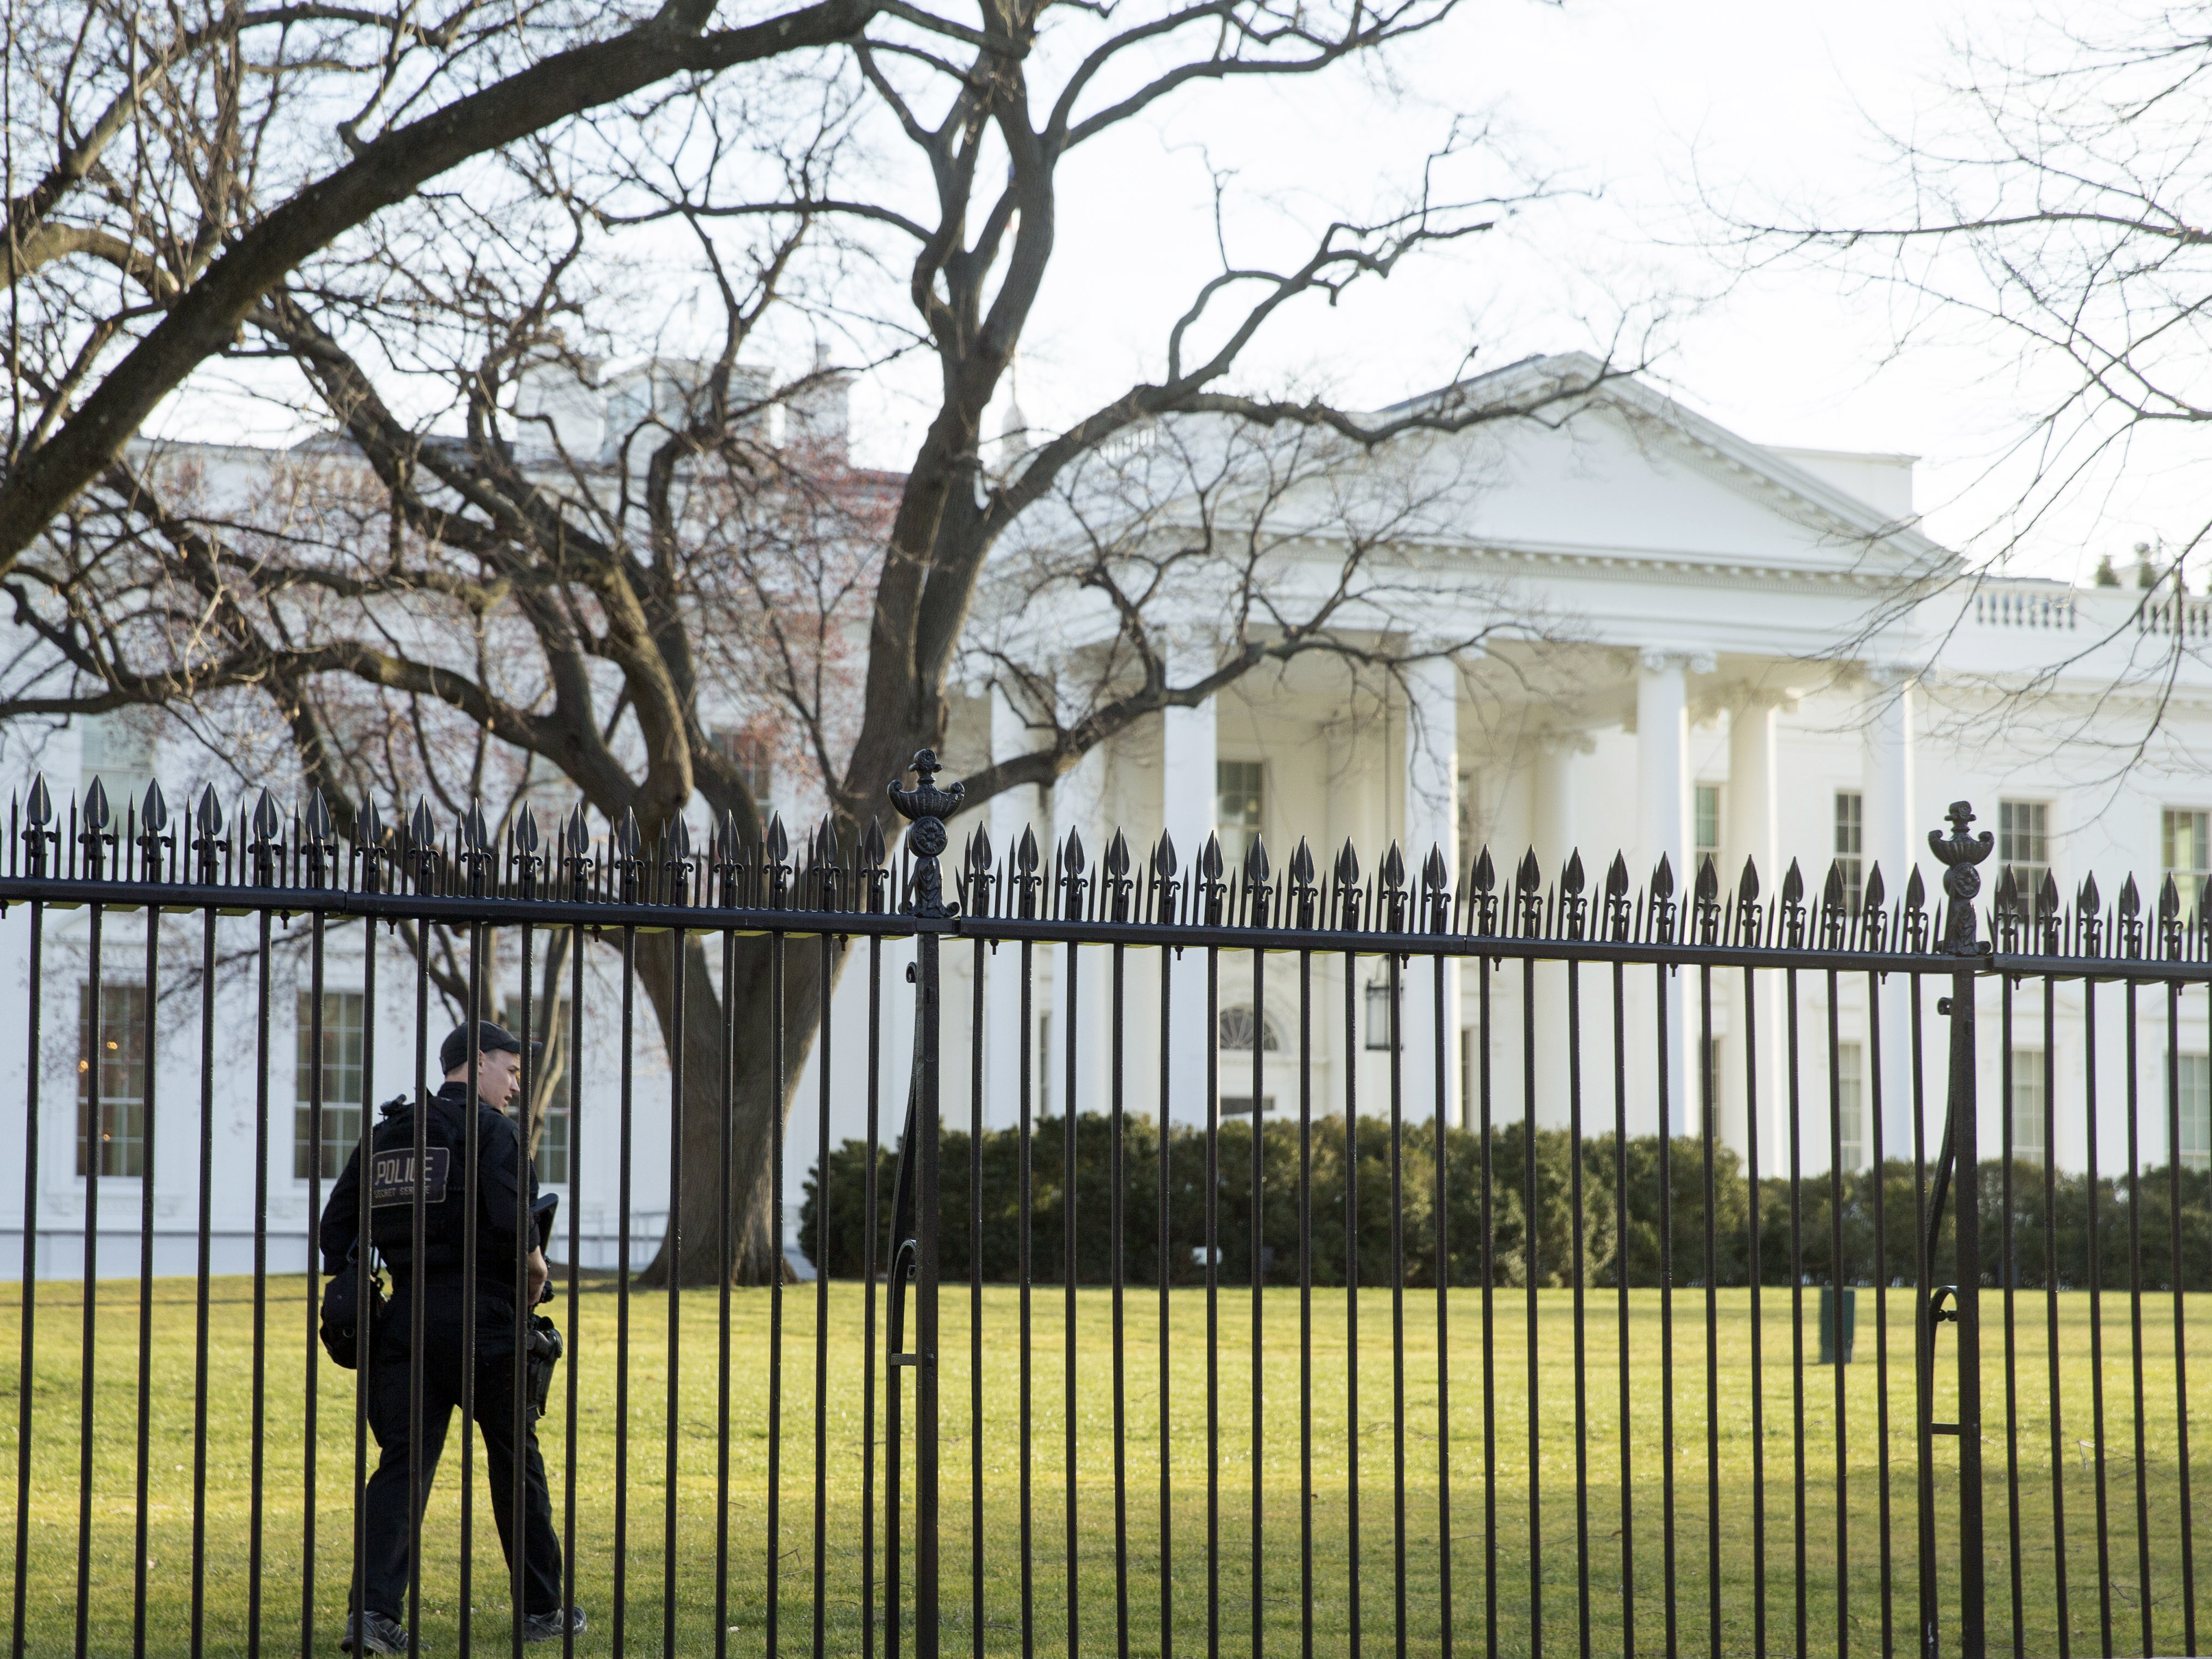 A member of the Secret Service walks the perimeter of the North Lawn of the White House in Washington, Monday, March 7, 2016.